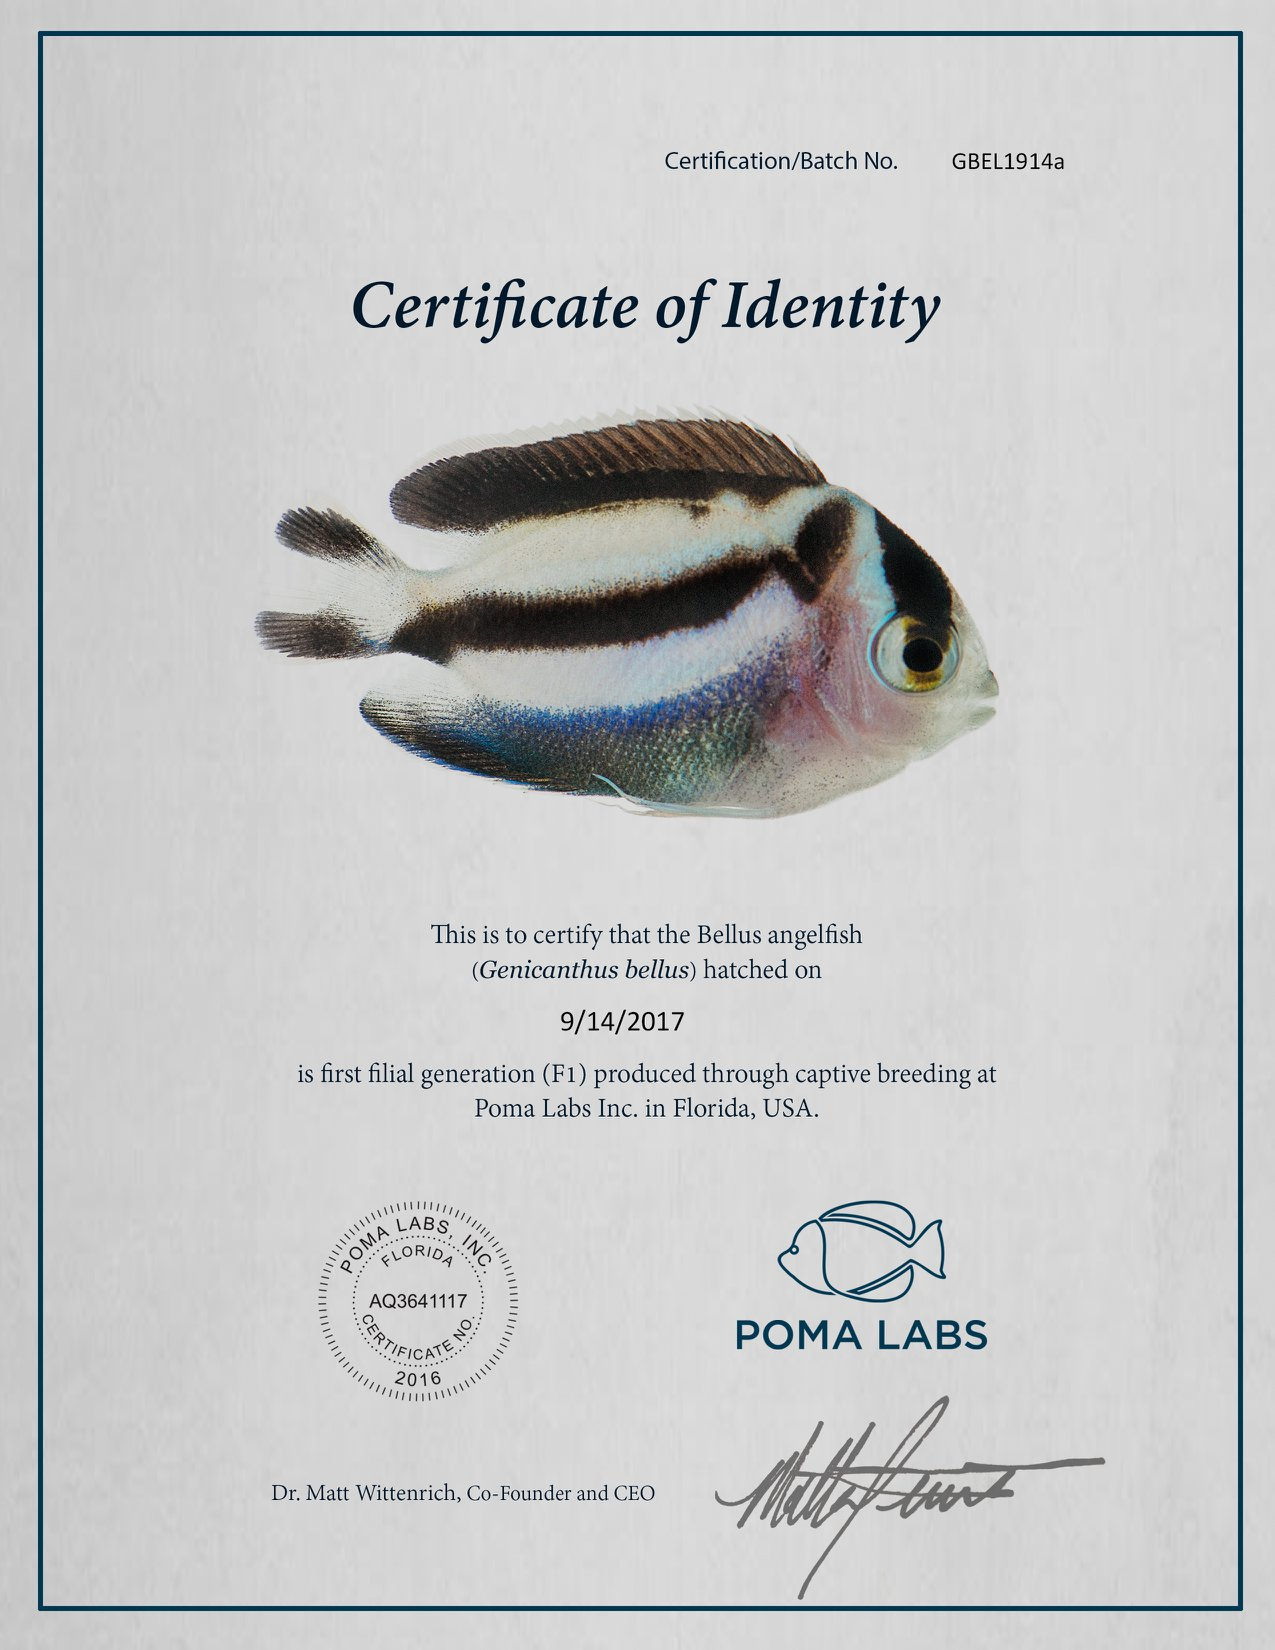 poma labs captive bred bellus angelfish genicanthus bellus becomes